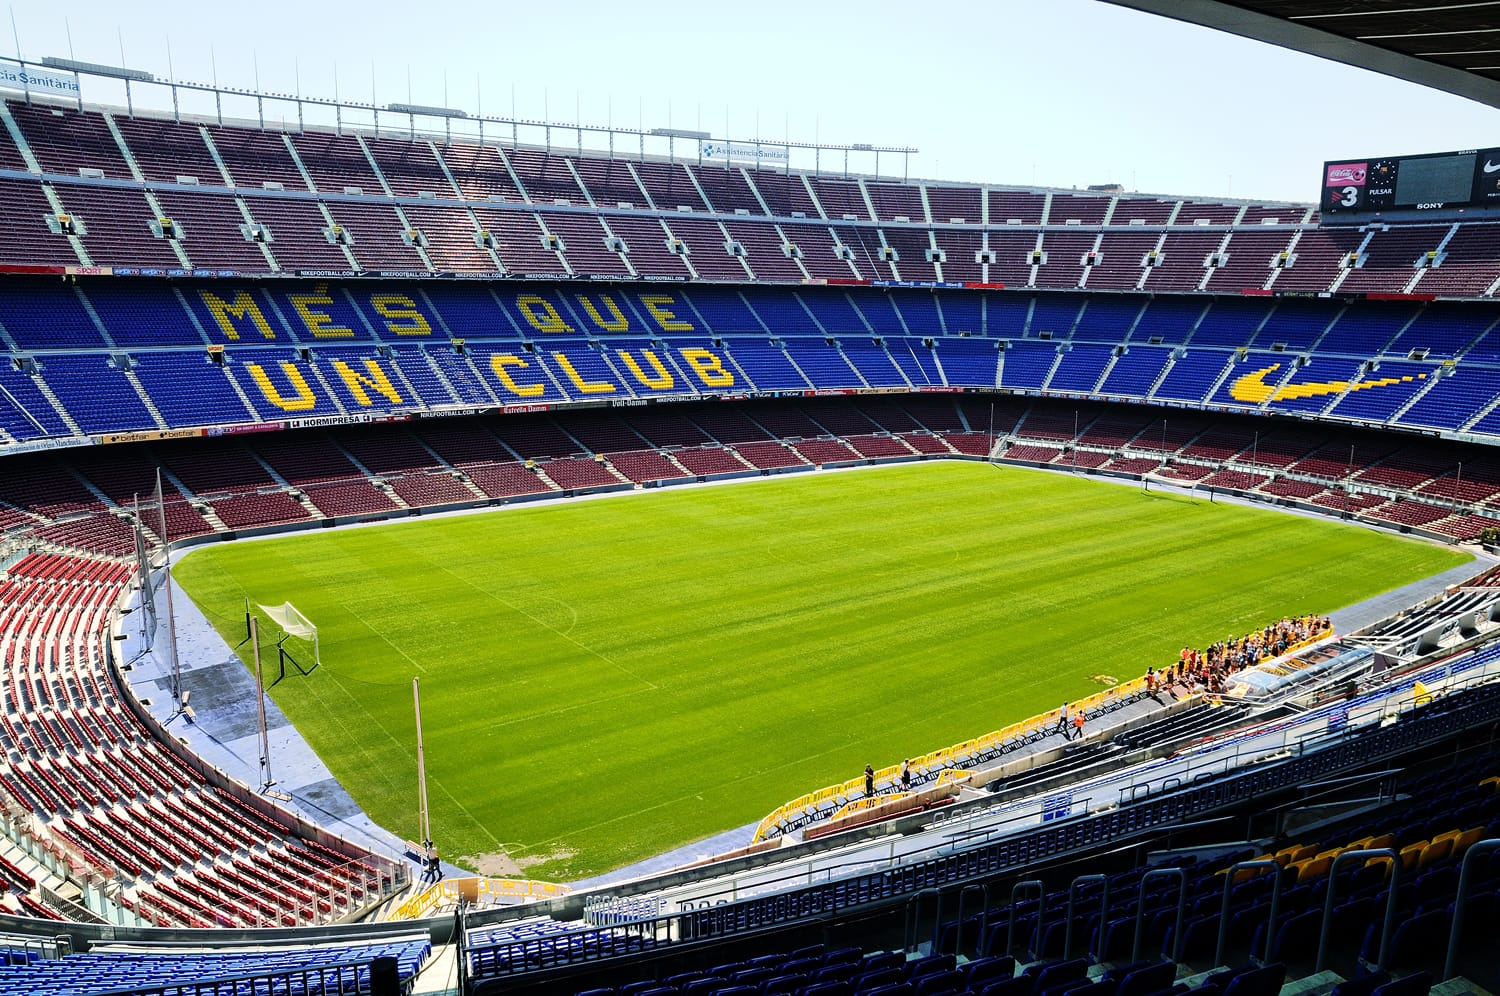 Camp Nou, Stadium of Football Club Barcelona in Barcelona, Spain.